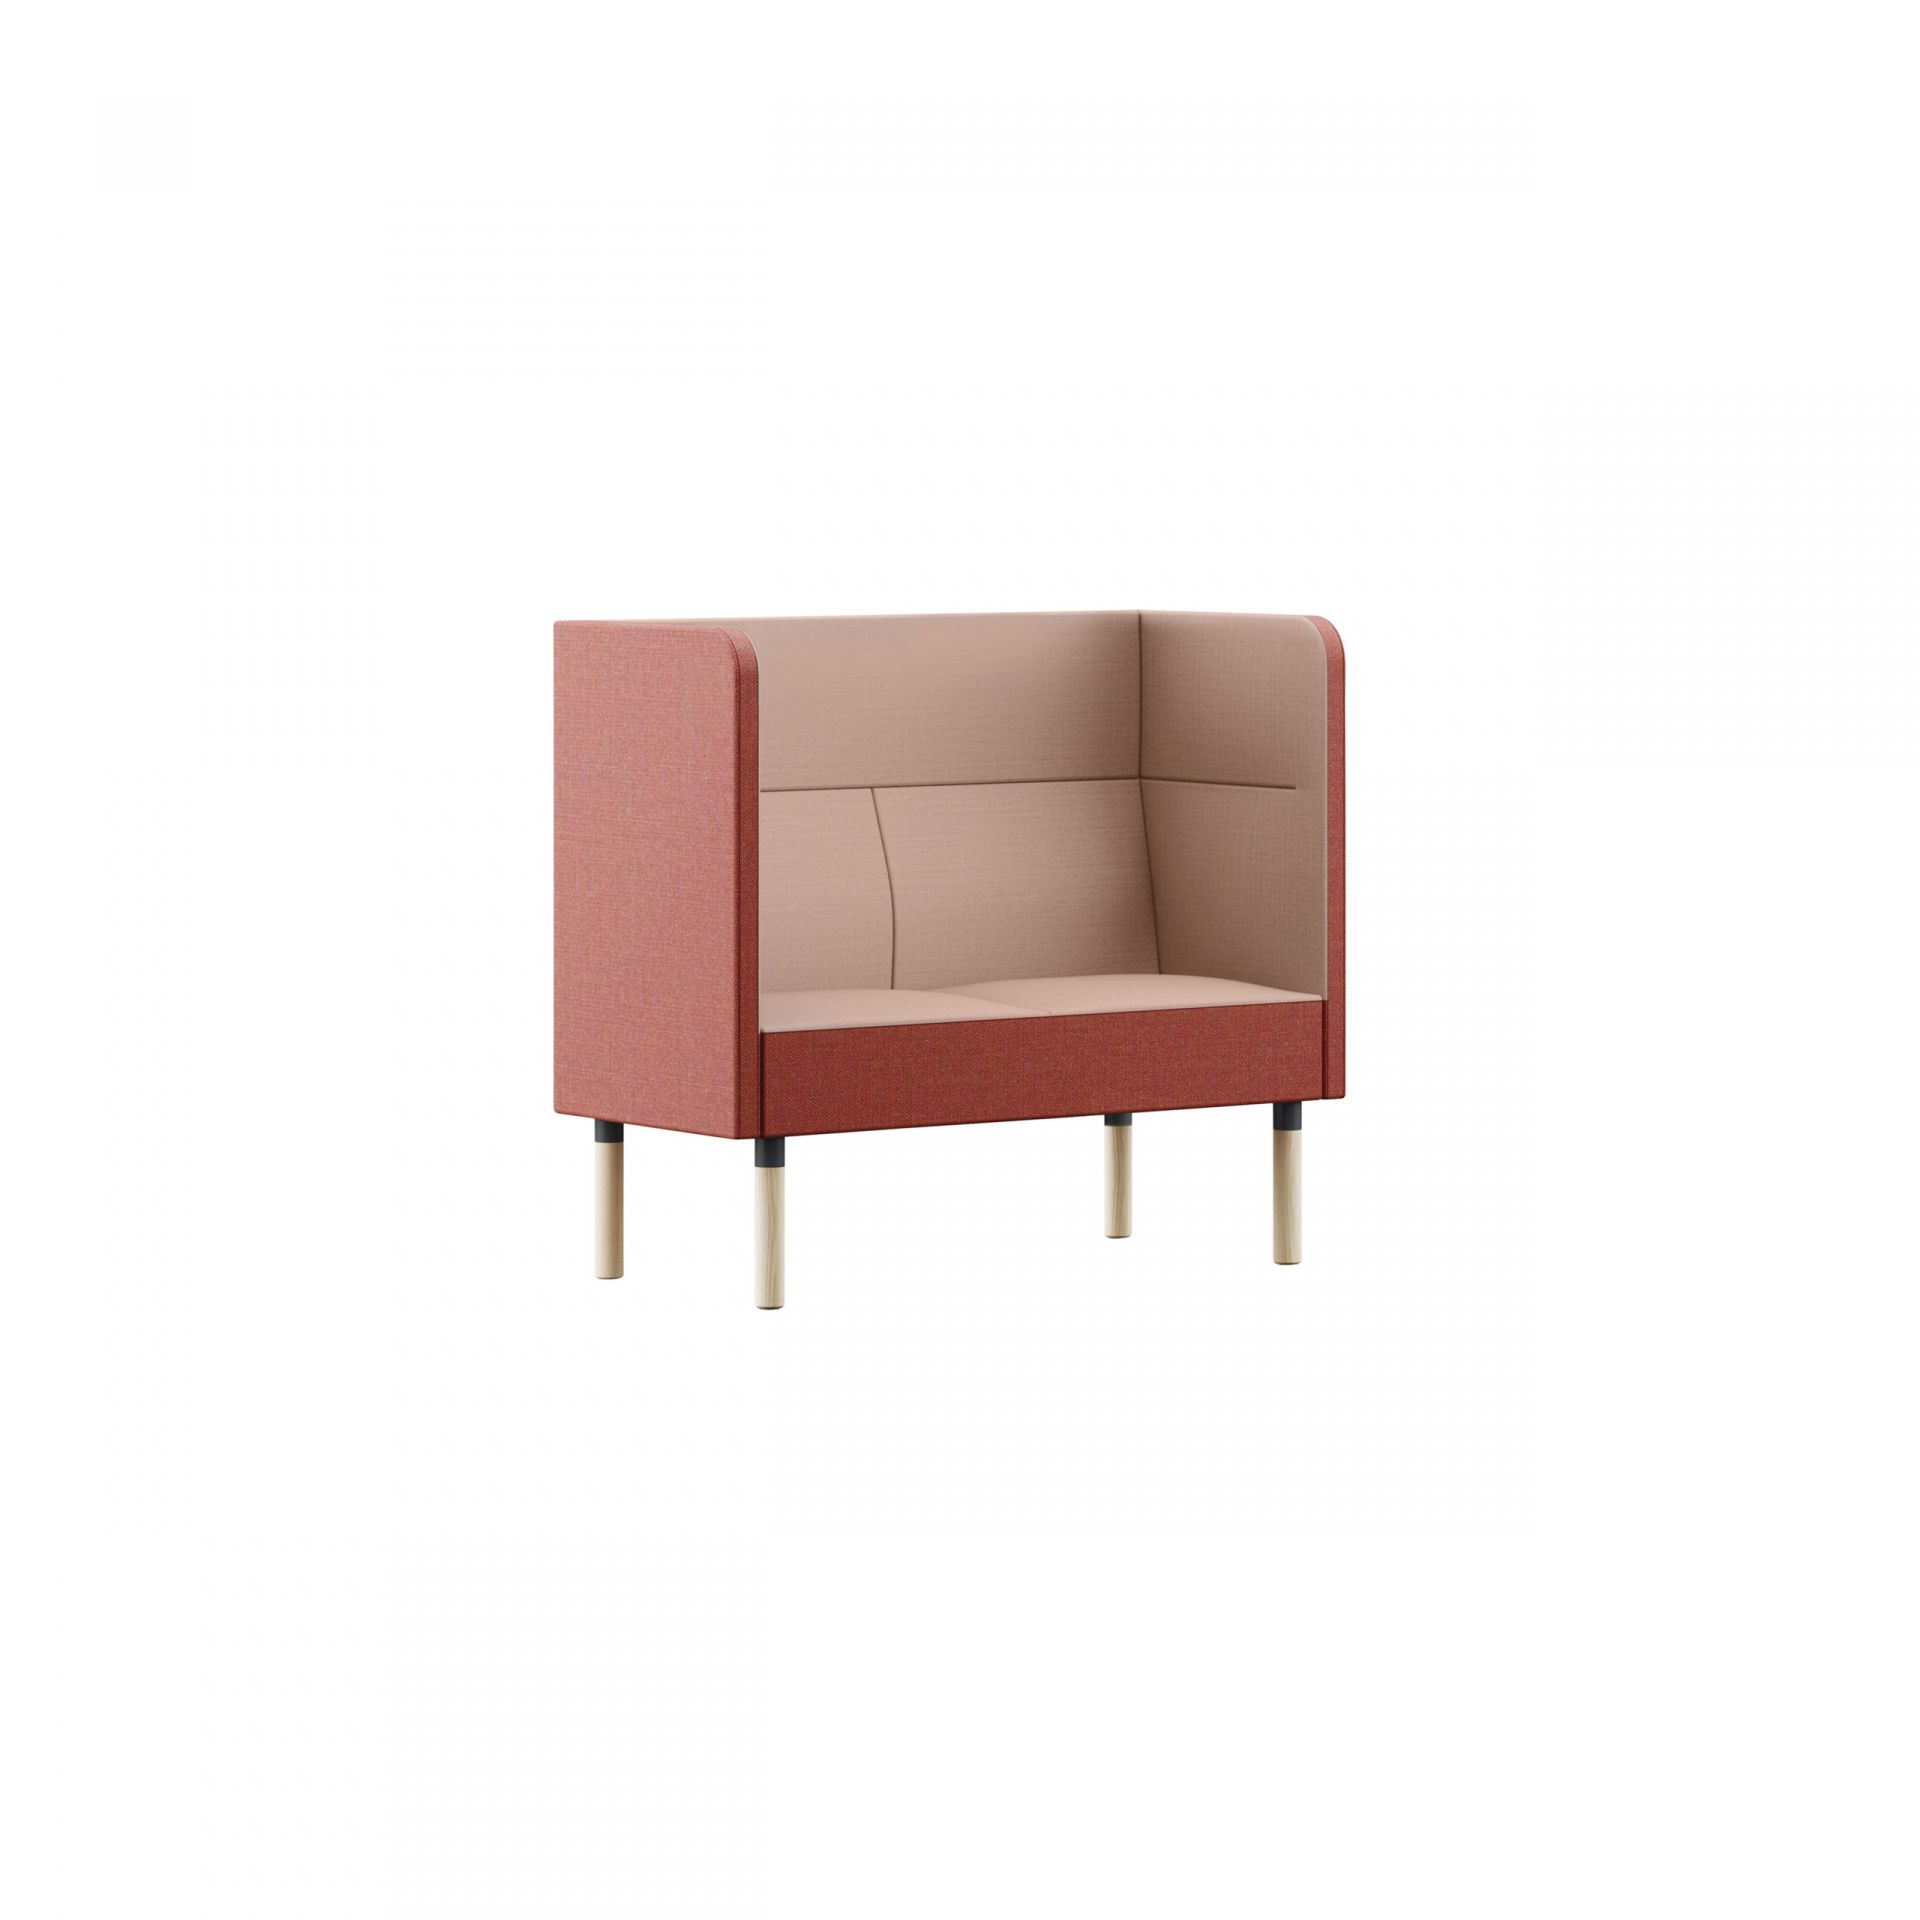 Mingle Sofa with wooden legs product image 3